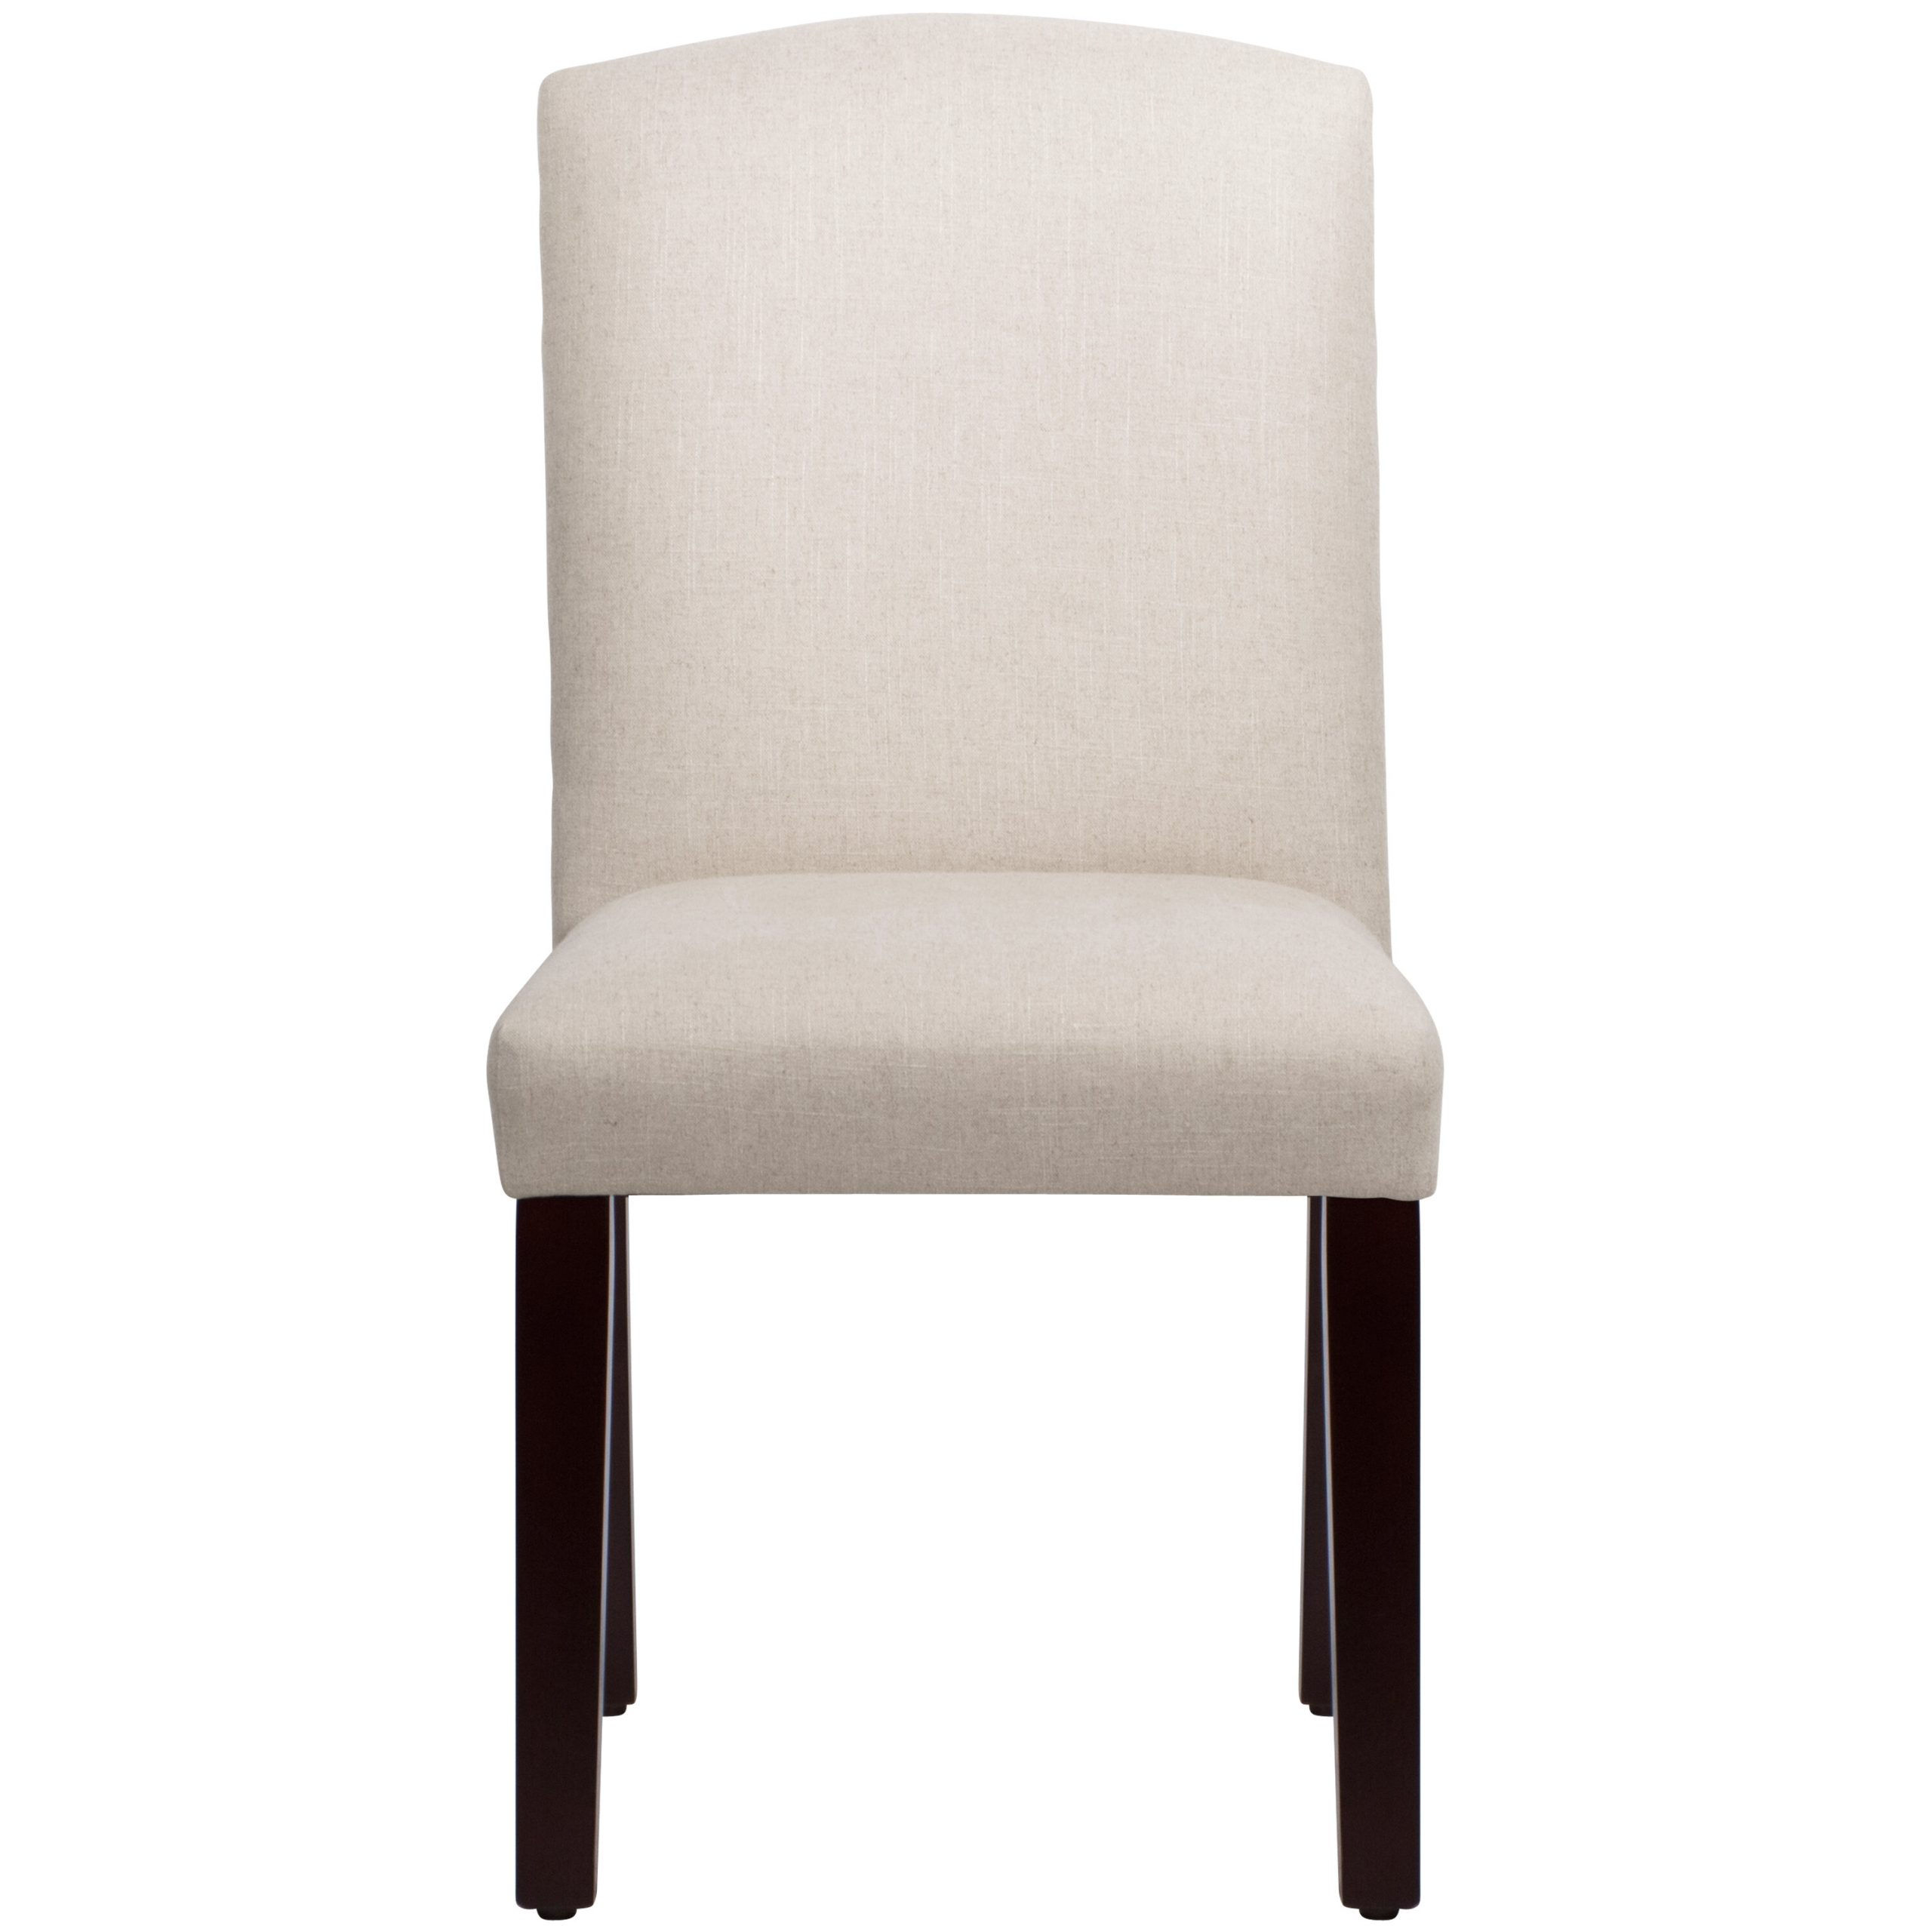 Parsons Accent Chairs You'Ll Love In 2021 | Wayfair With Regard To Aime Upholstered Parsons Chairs In Beige (View 8 of 15)